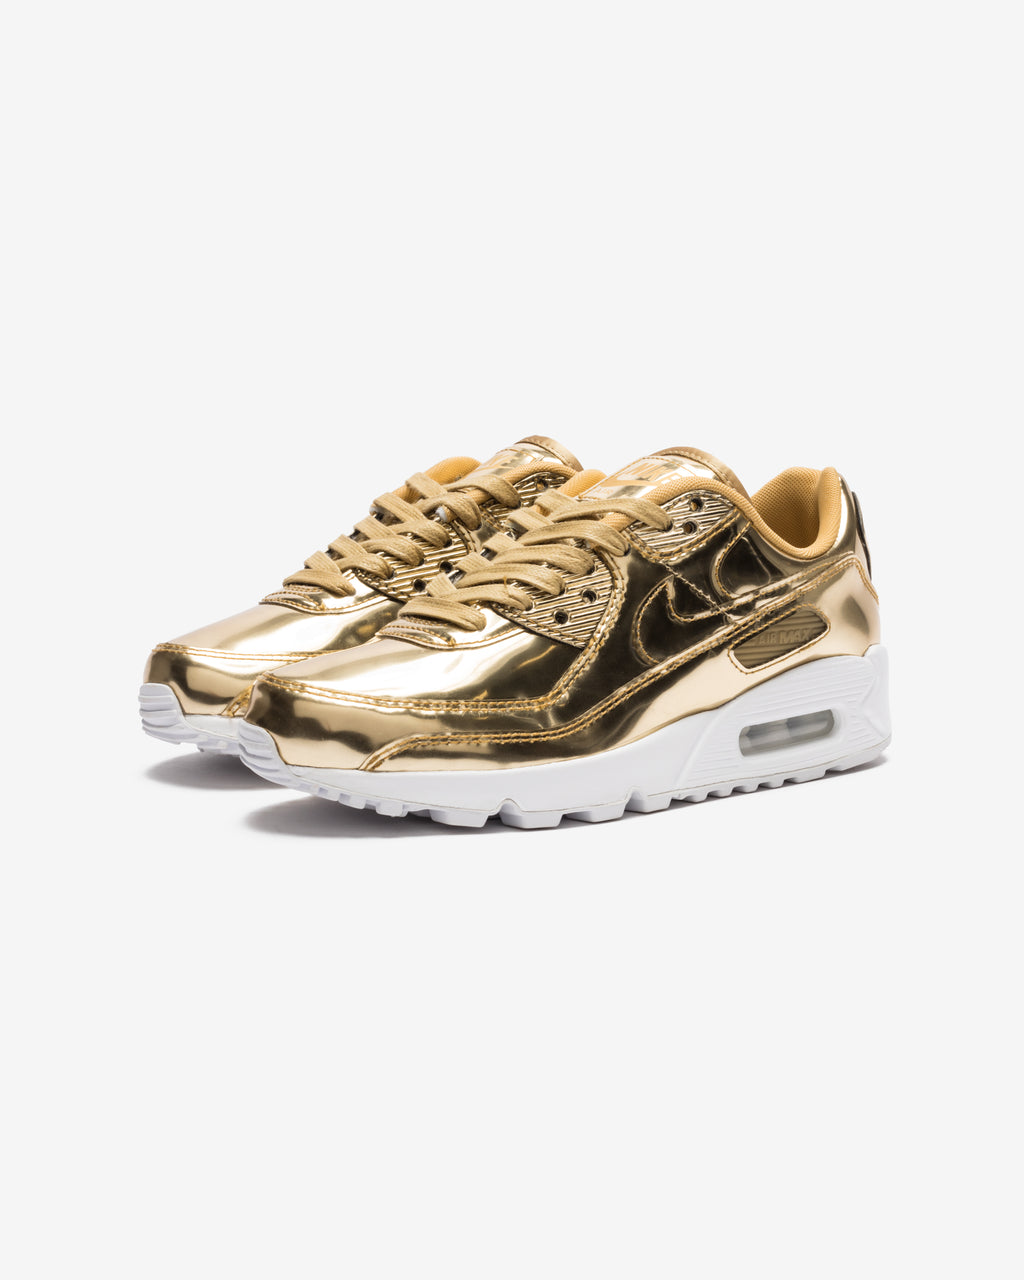 WOMEN'S AIR MAX 90 SP - METALLICGOLD/ CLUBGOLD